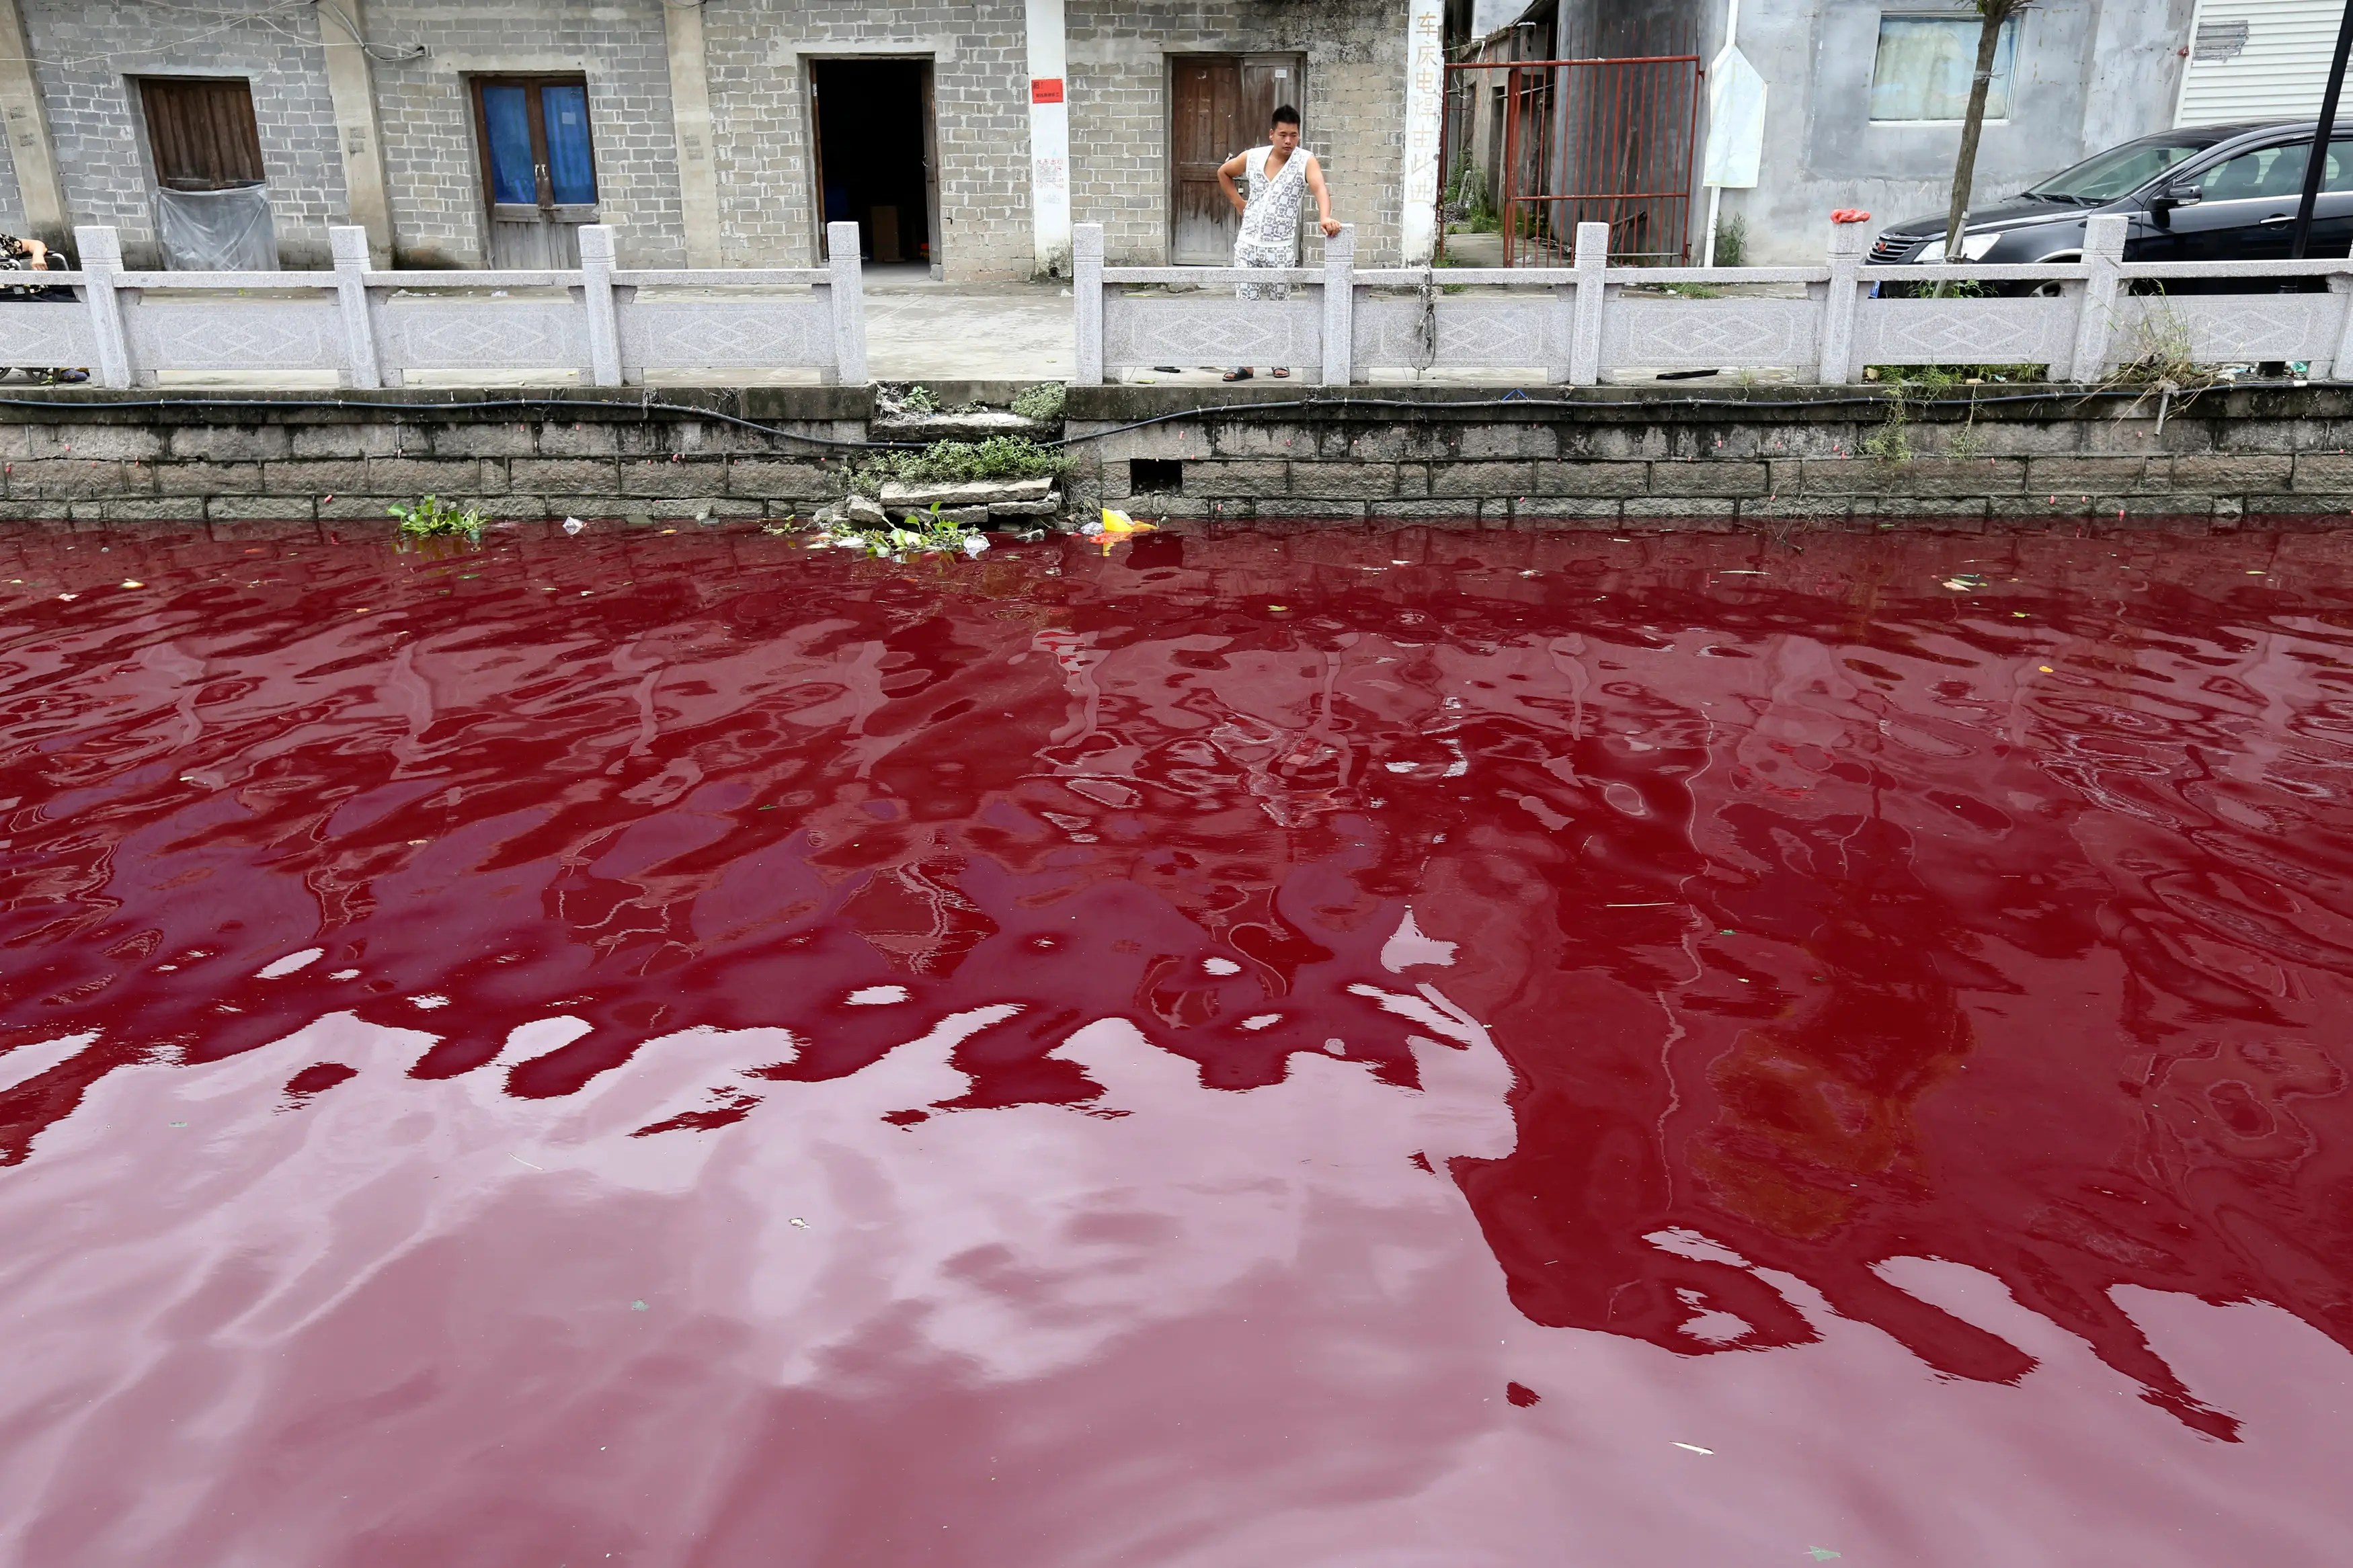 Residents of Wenzhou, China, woke one July morning to find that a river had turned red as blood due to pollution in the area.